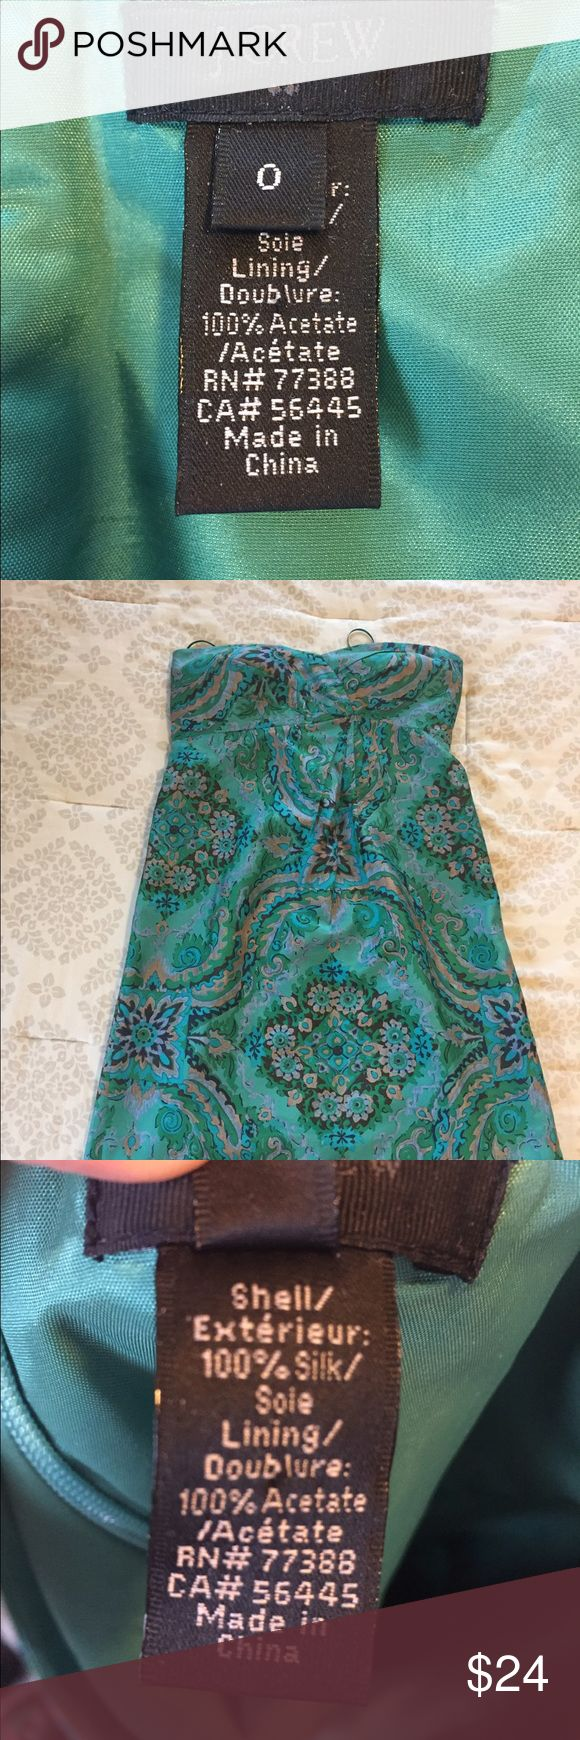 J Crew green paisley silk strapless dress A cute little lightweight spring/summer dress with a silk exterior perfect for a night out or a friends wedding!  Only worn a few times and in excellent condition.  Hits right above the knee. J. Crew Dresses Strapless